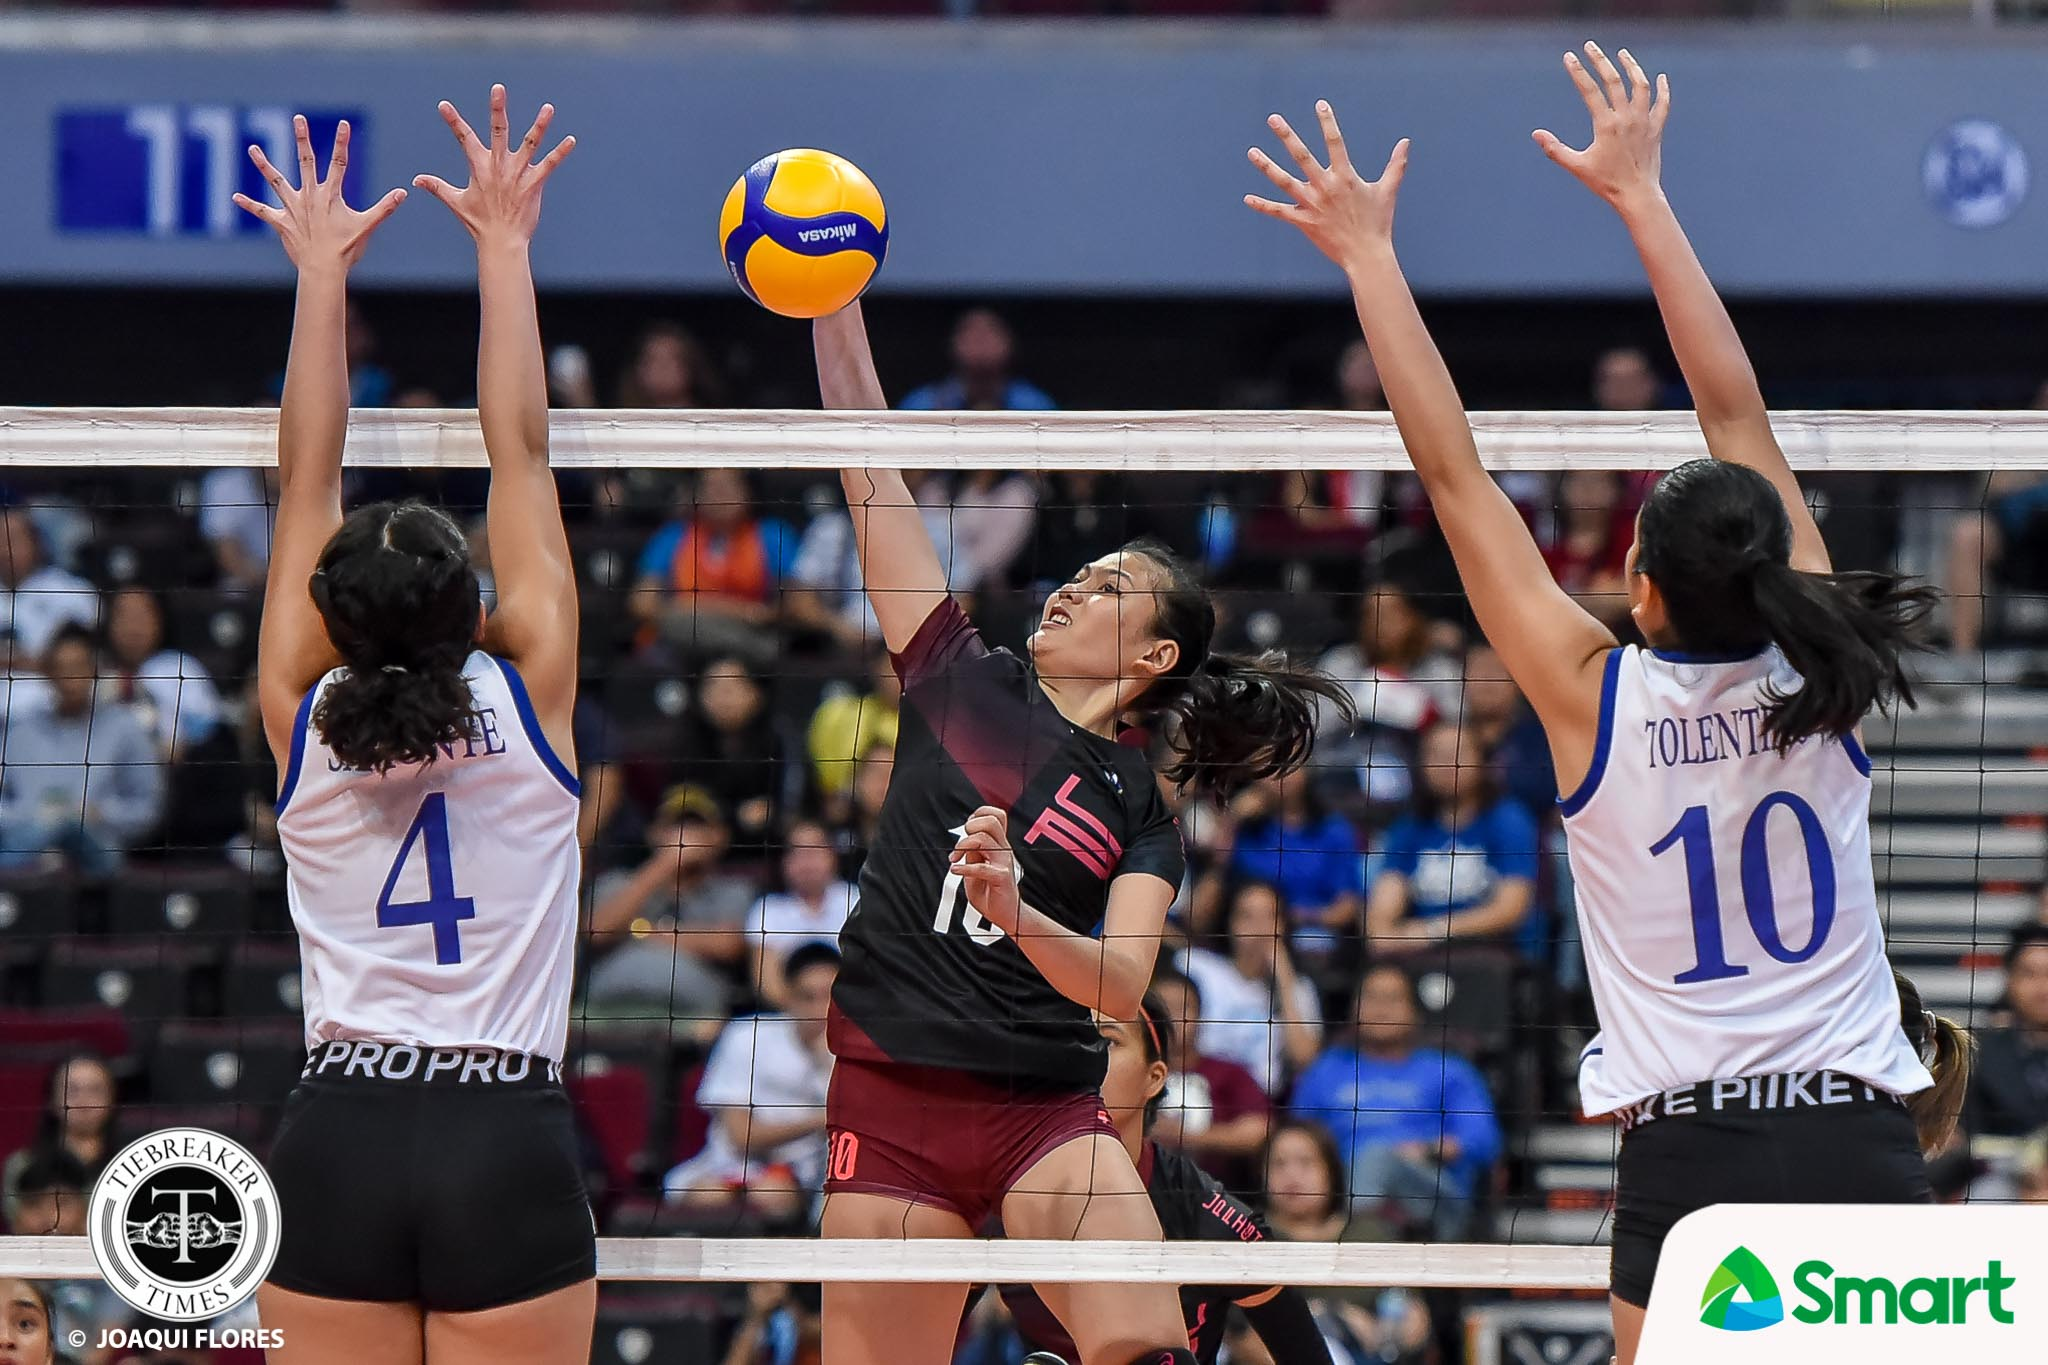 Tiebreaker Times After dismal UAAP 82 debut, Isa Molde shows way for UP Fighting Maroons News UAAP UP Volleyball  UP Women's Volleyball UAAP Season 82 Women's Volleyball UAAP Season 82 Isa Molde